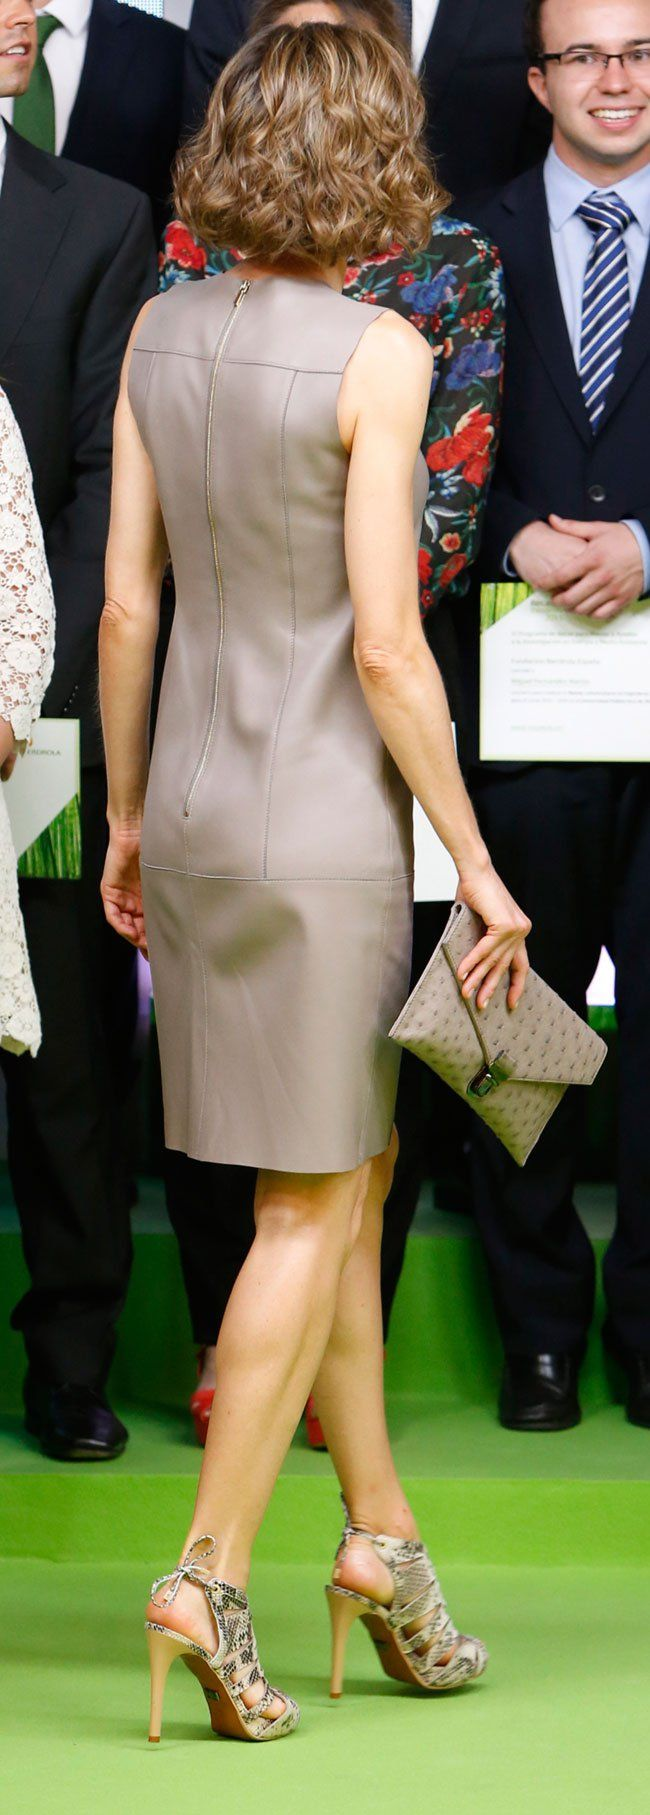 Queen Letizia of Spain delivers Iberdrola Foundation scholarships at casa de America on July 9, 2015 in Madrid, Spain.